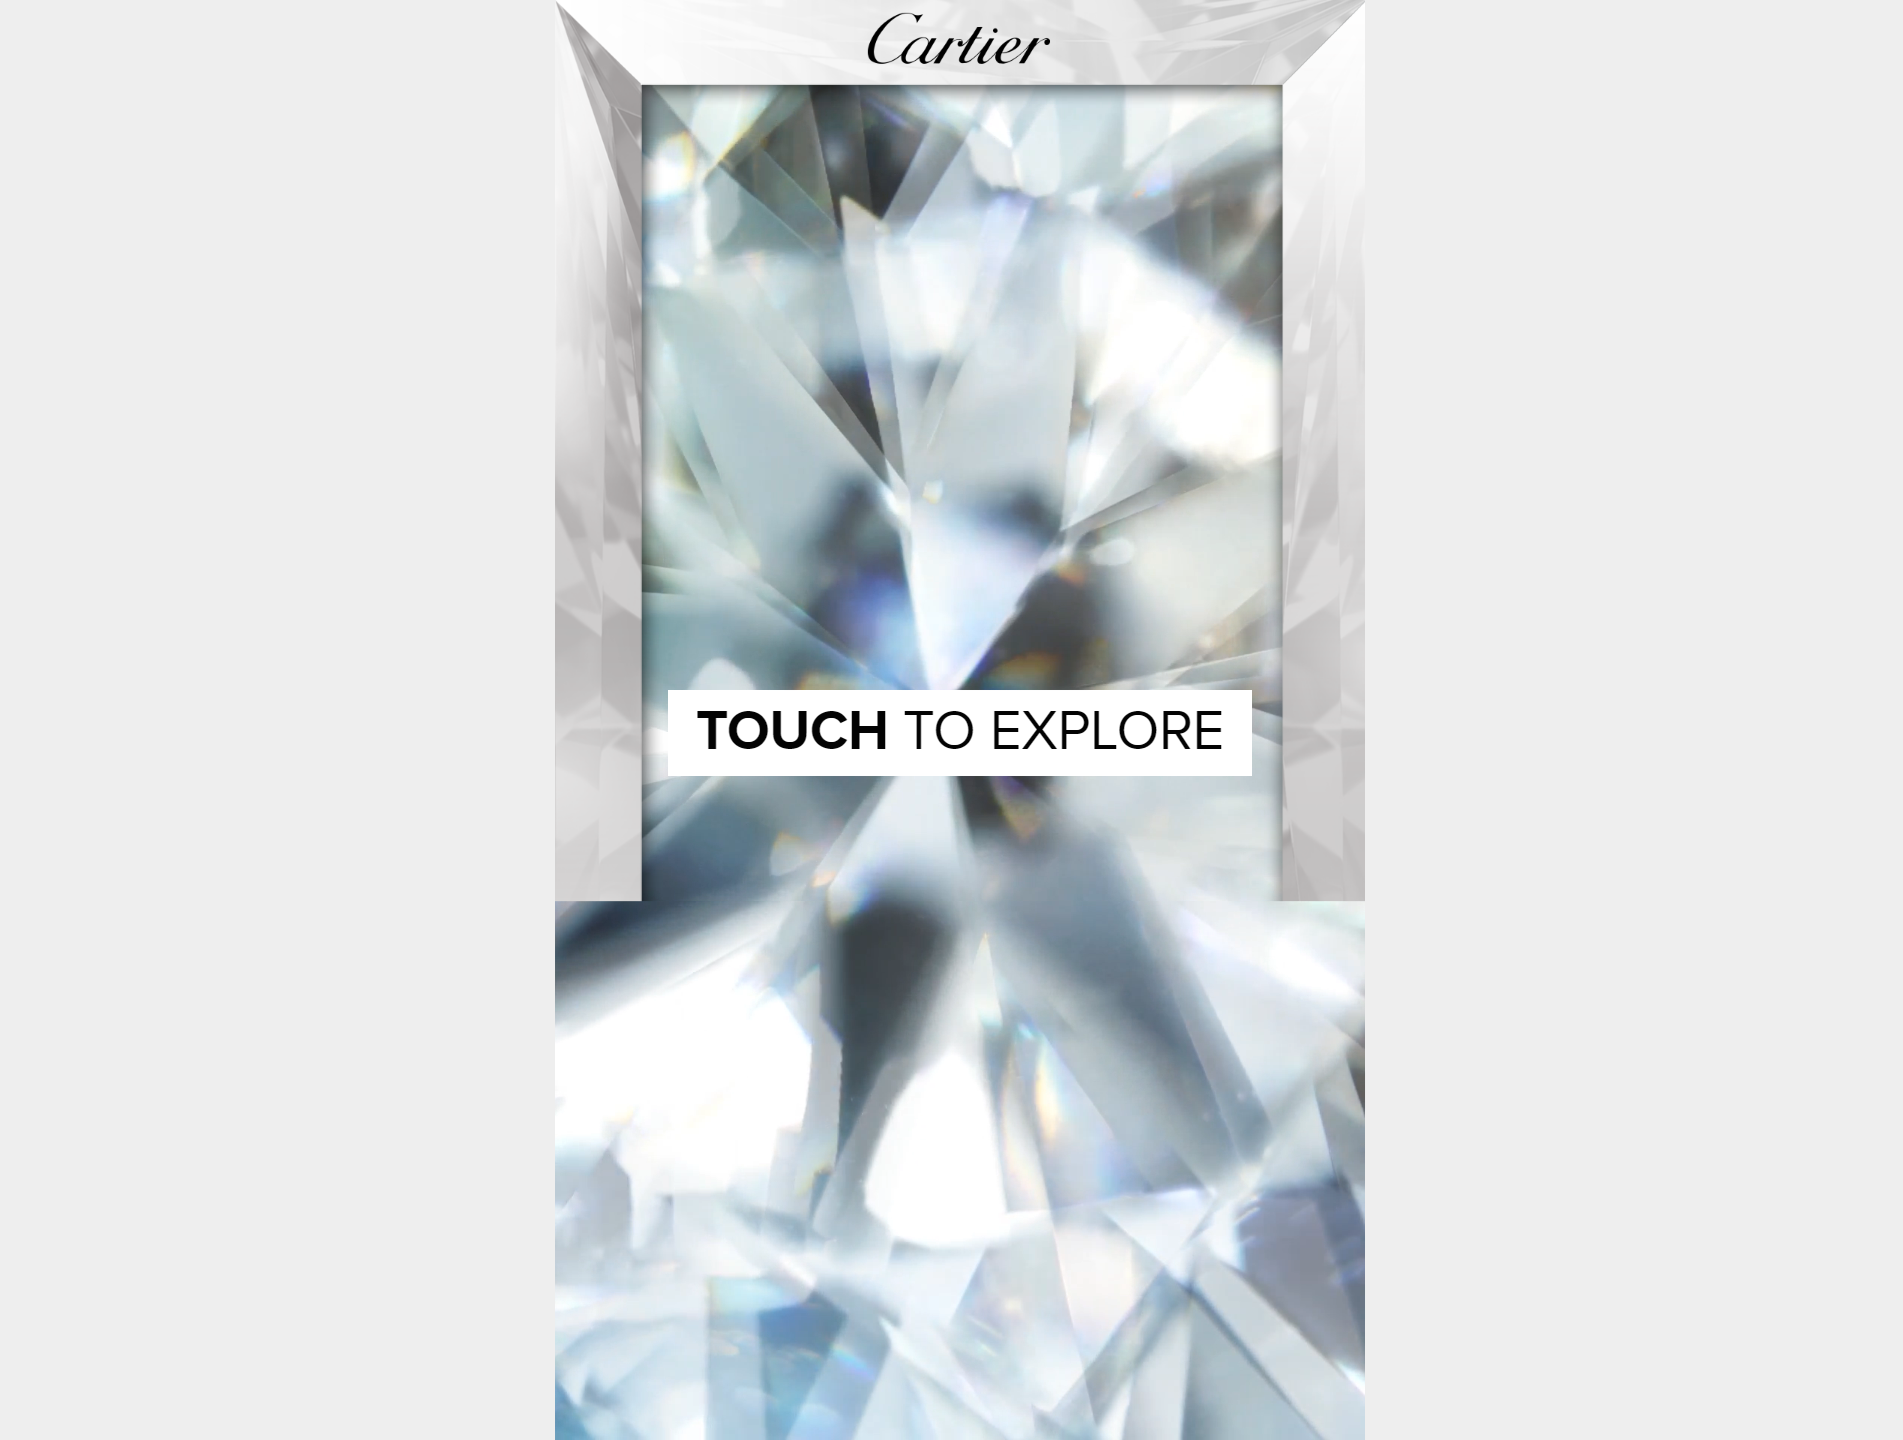 THE CARTIER DIAMOND homepage